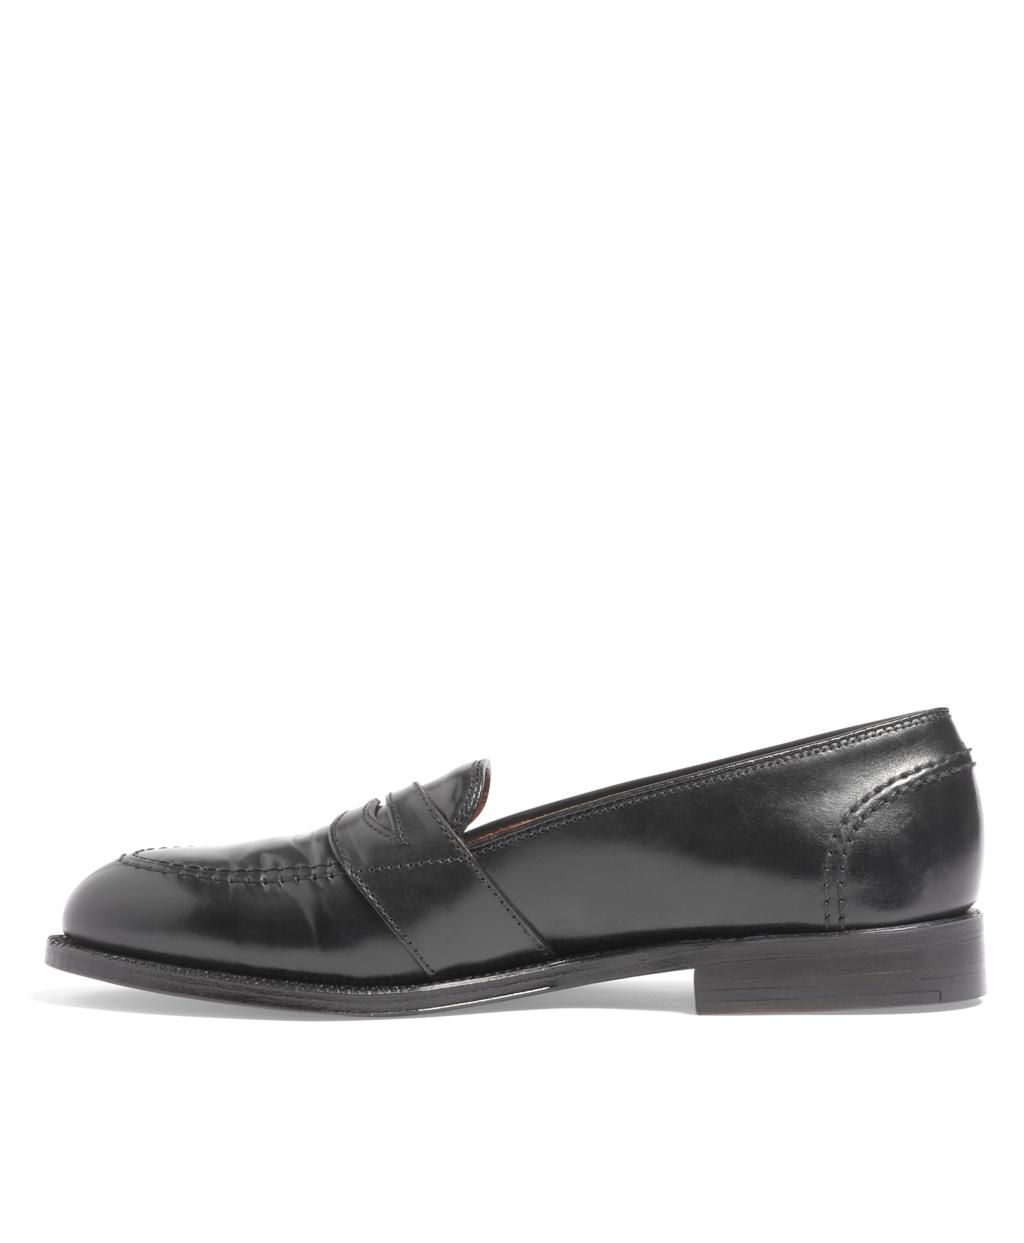 fe4eb8b31ad Lyst - Brooks Brothers Cordovan Low Vamp Loafers in Black for Men